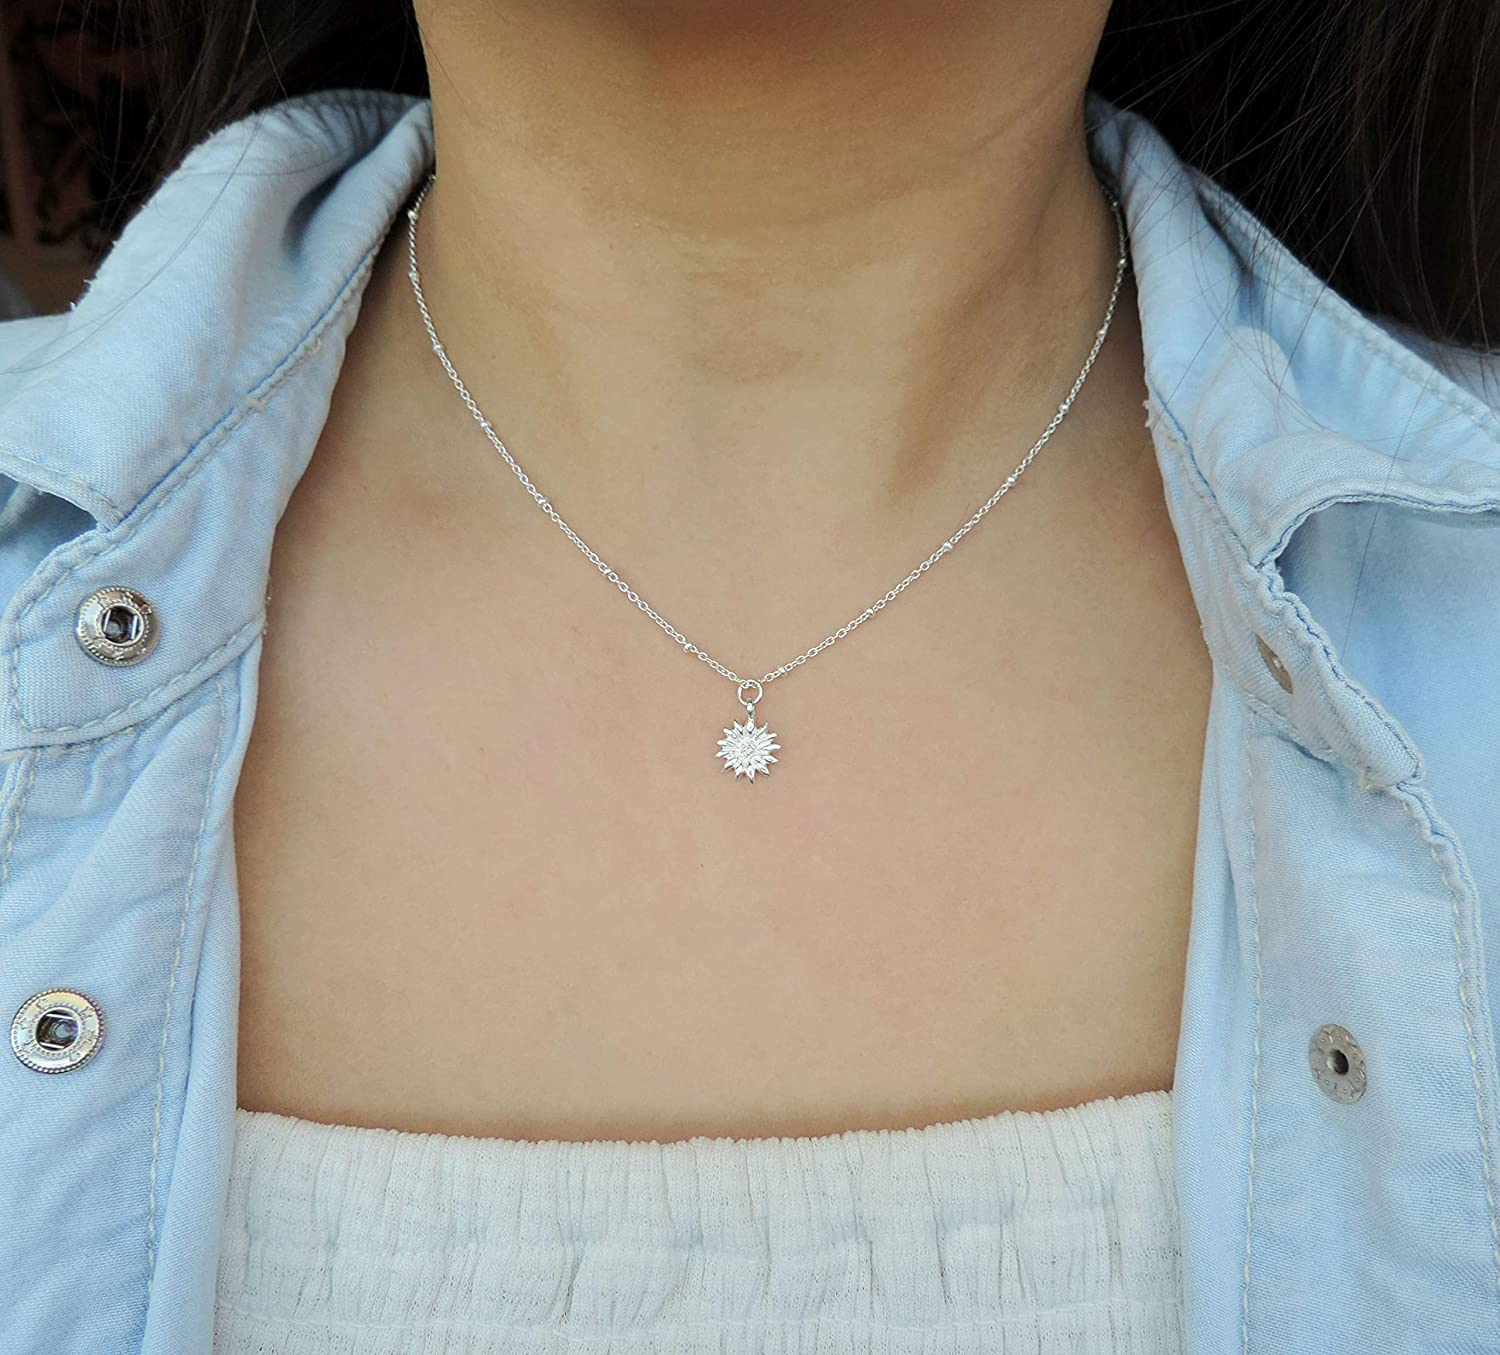 Feminine Floral Necklace  Elegant Orchid Jewelry on Wedding Day  Romantic Bridesmaid Gift  Sterling Silver Chain